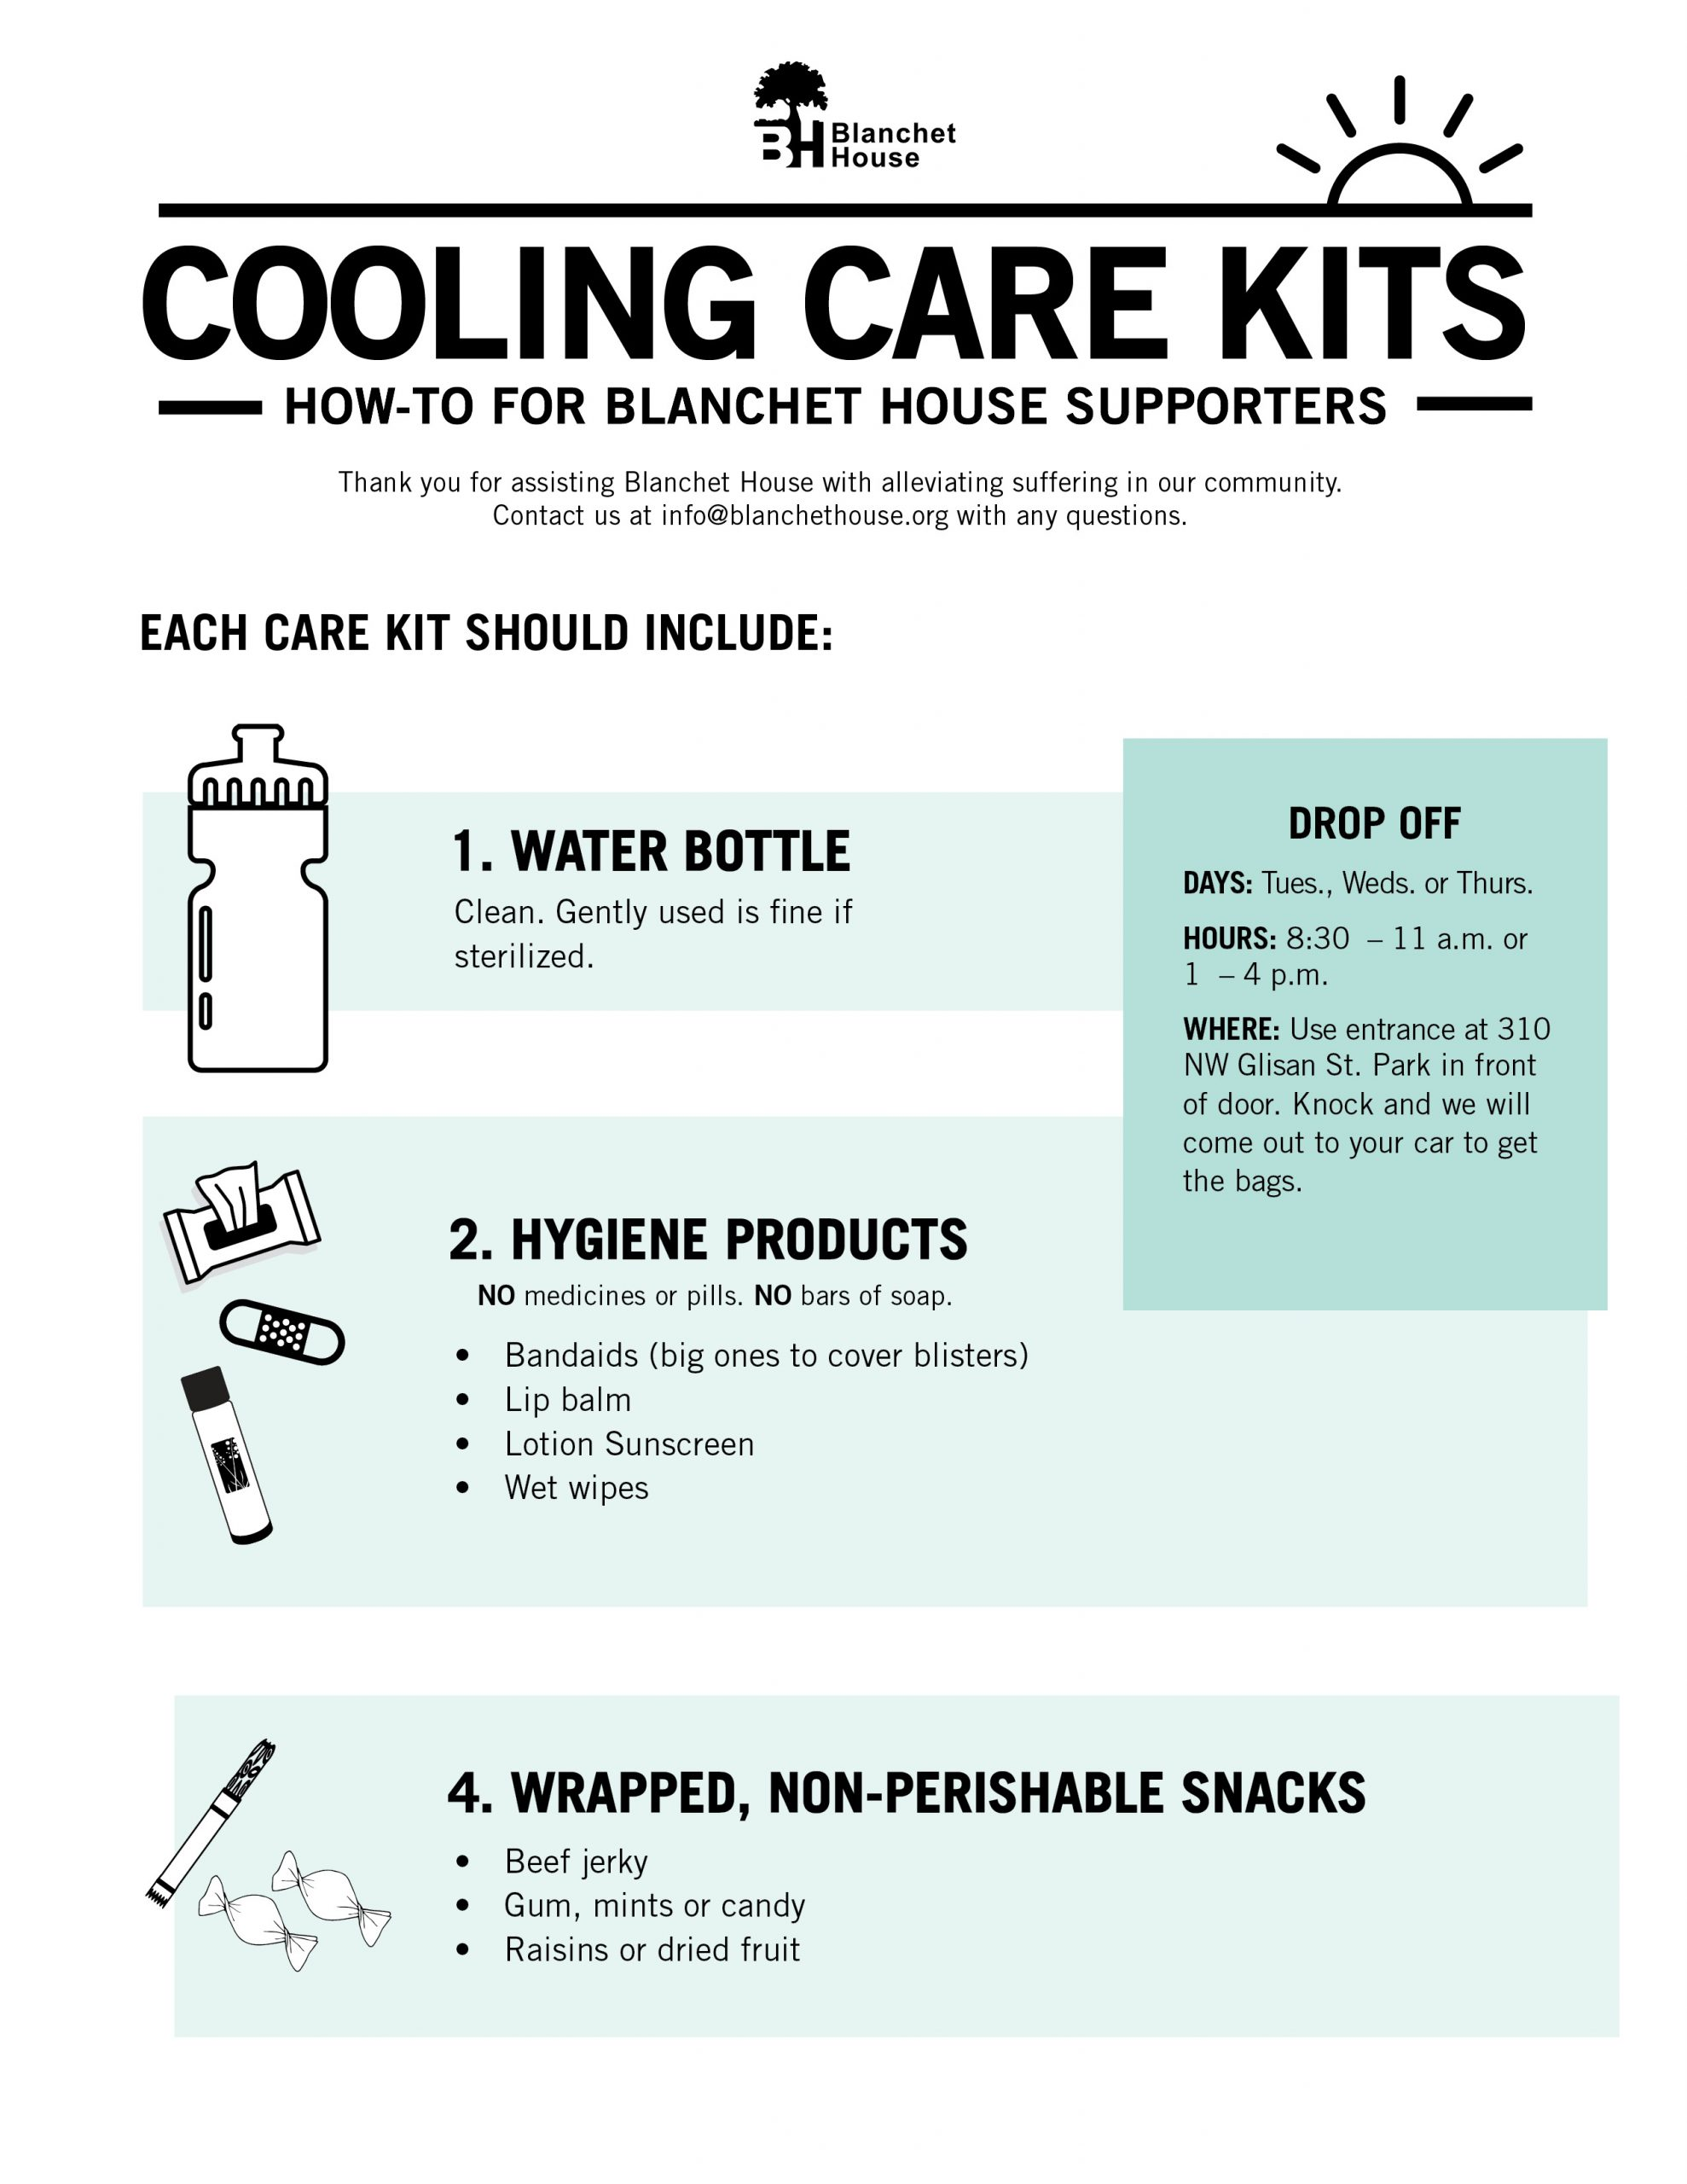 How to make a summer care kit for homeless